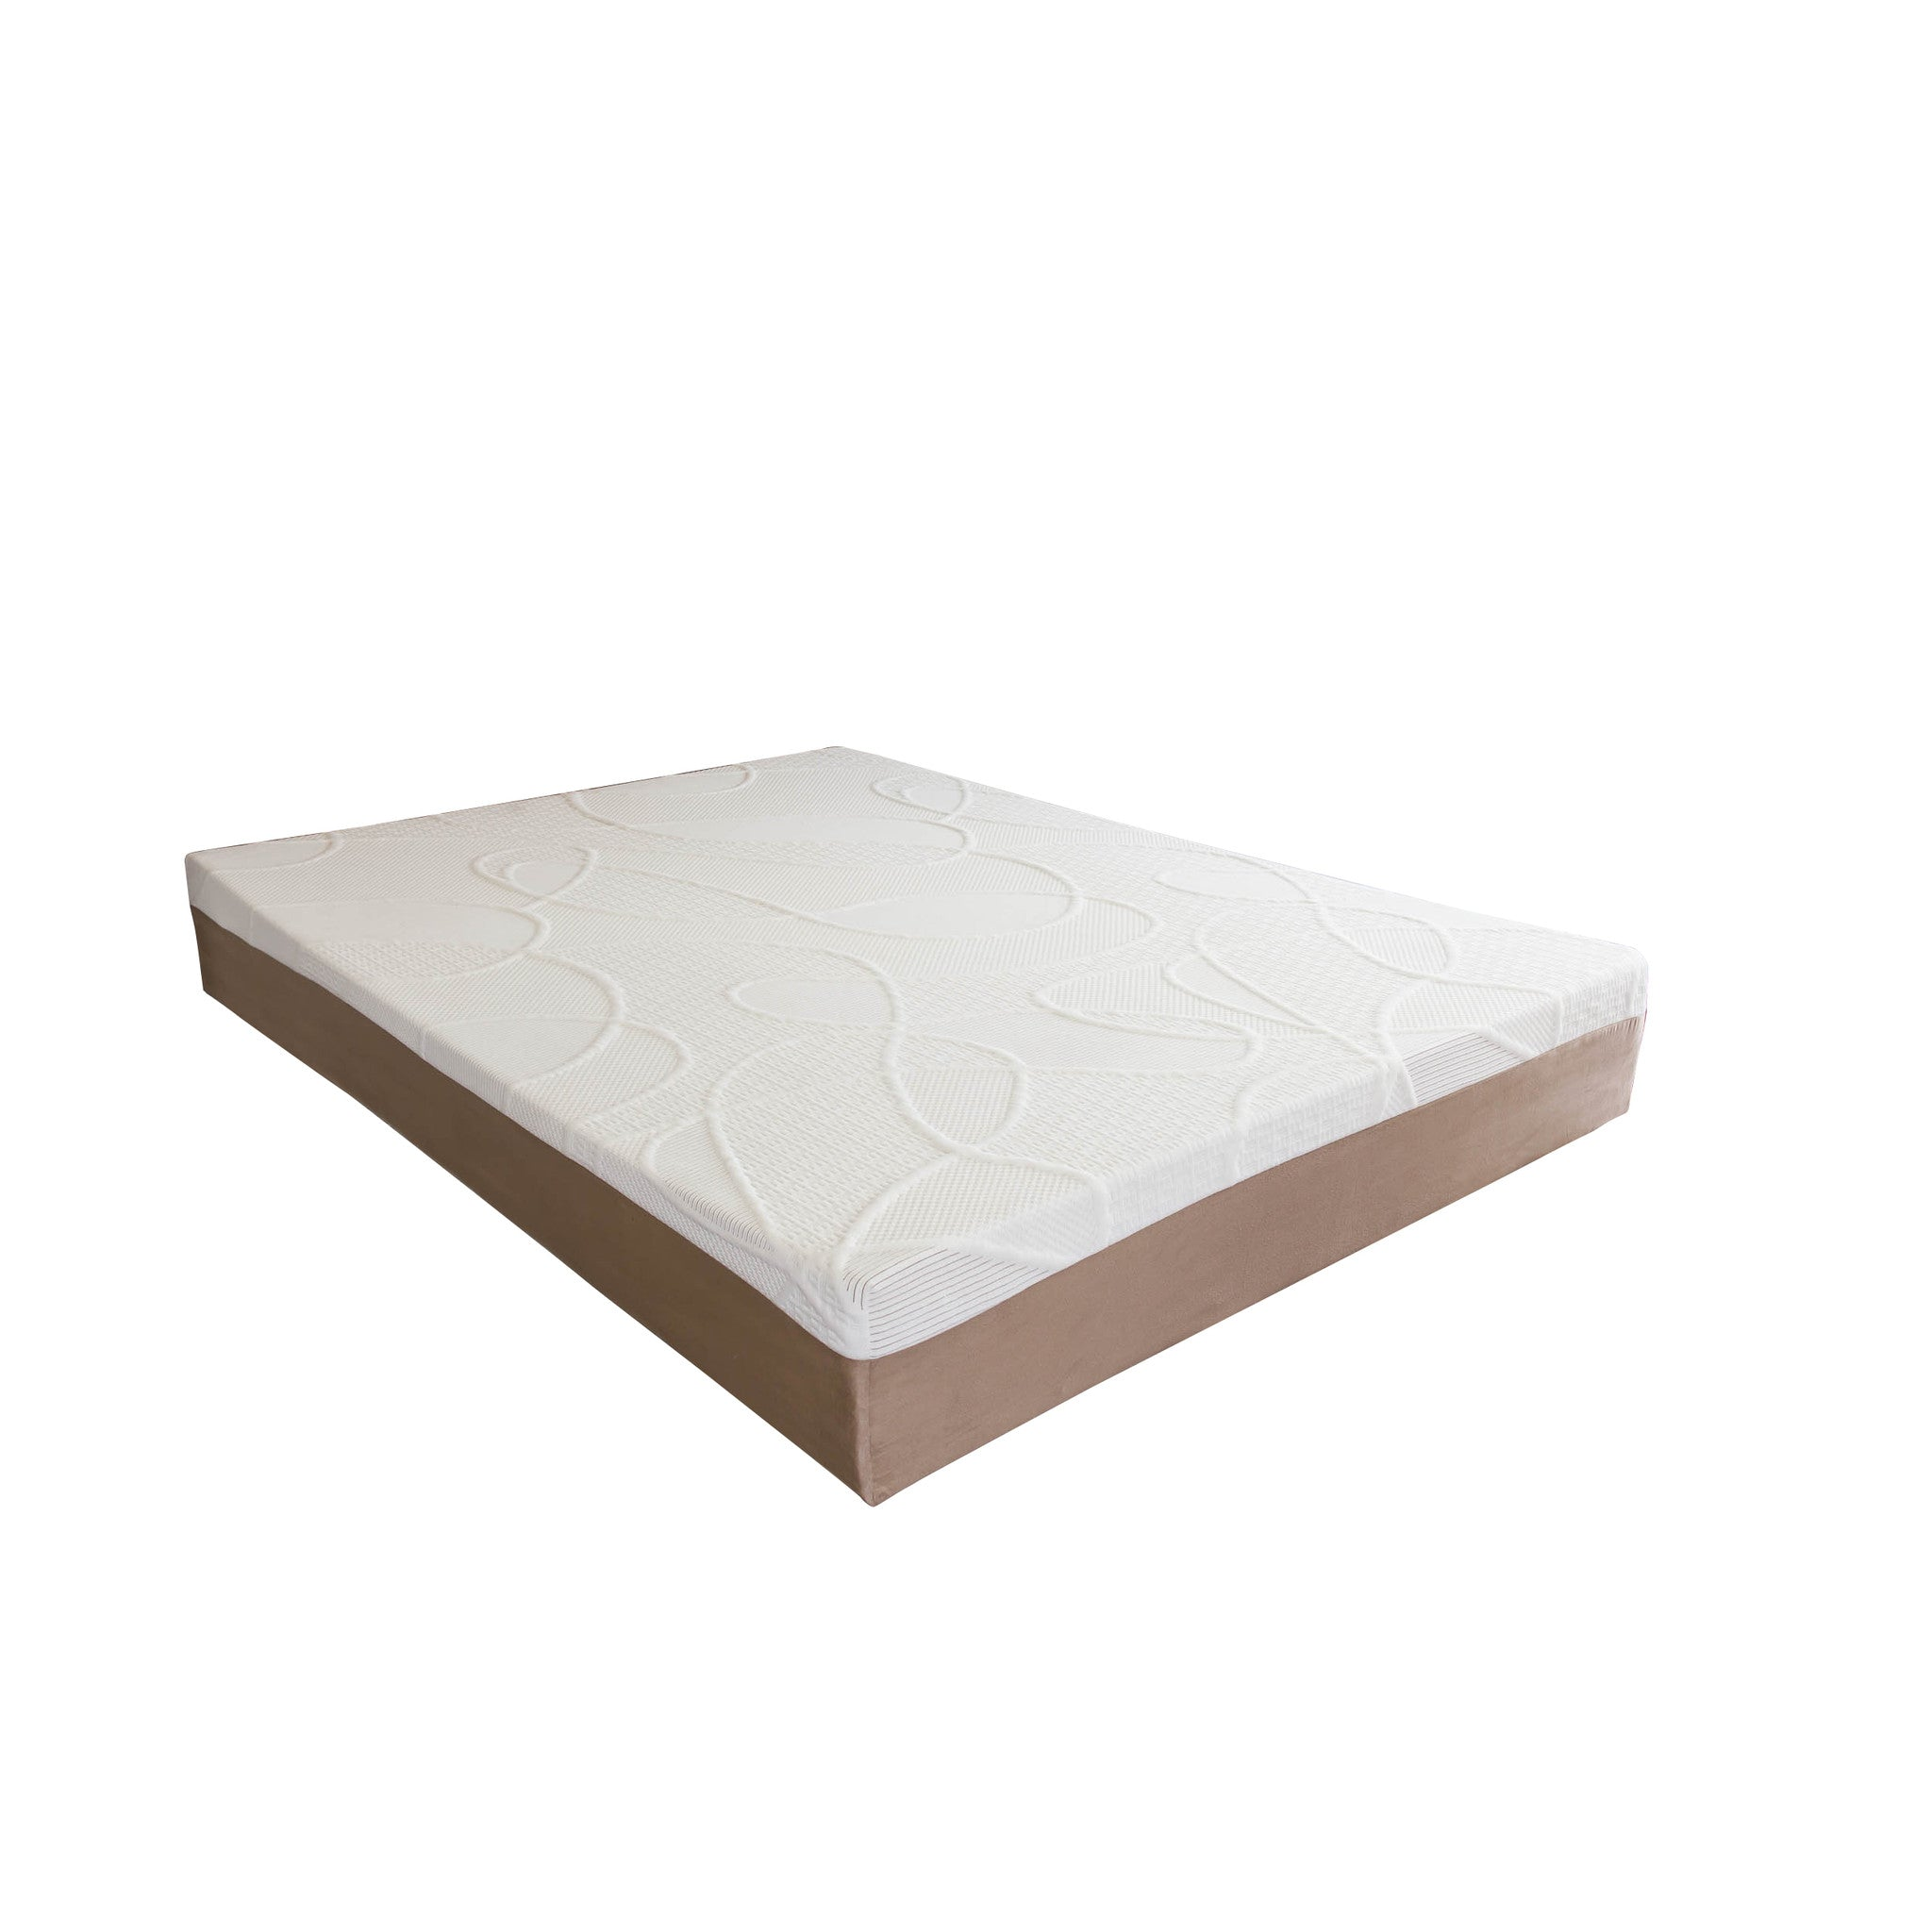 Gel memory foam mattress on Sale Mattress to my Door